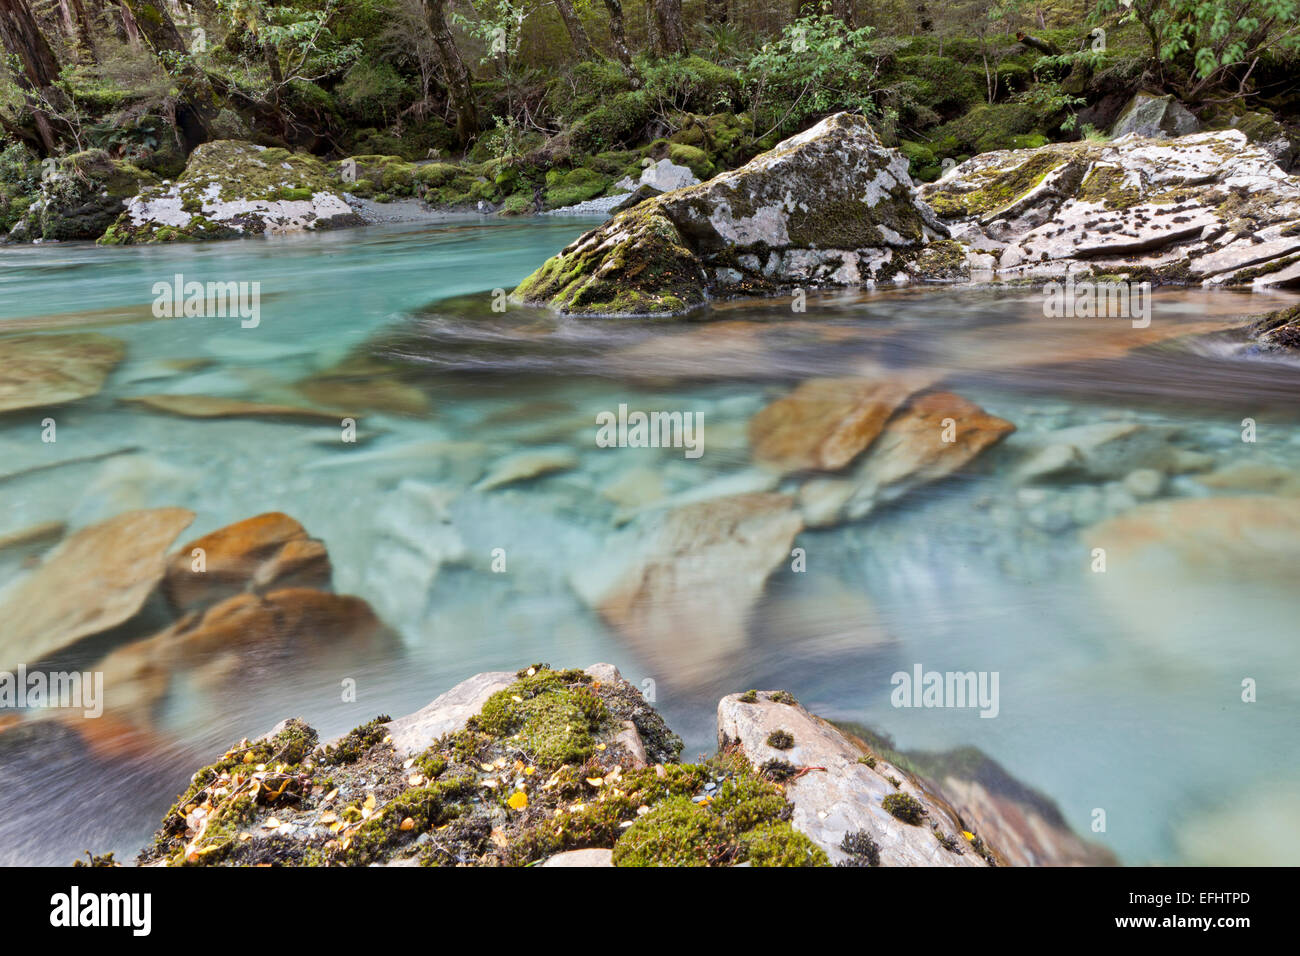 Turquoise, clear mountain water along the Routeburn Track, a Great Walk, South Island, New Zealand - Stock Image